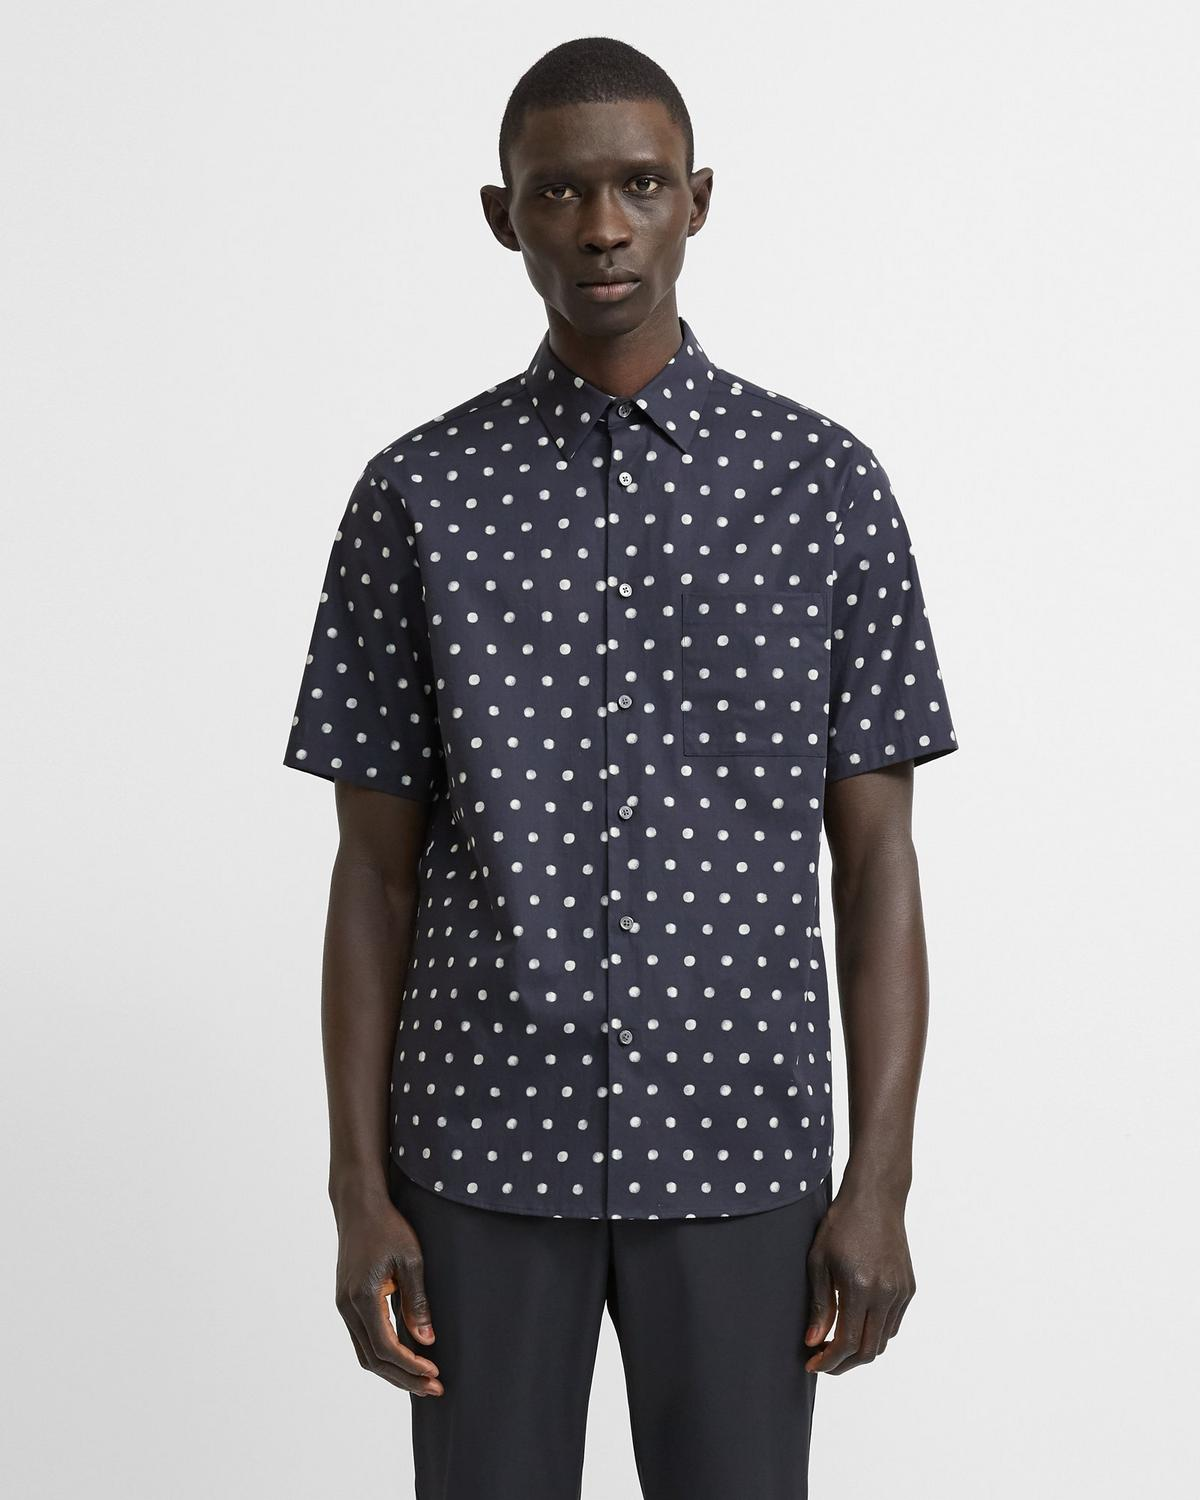 Menlo Short-Sleeve Shirt in Polka Dot Stretch Cotton